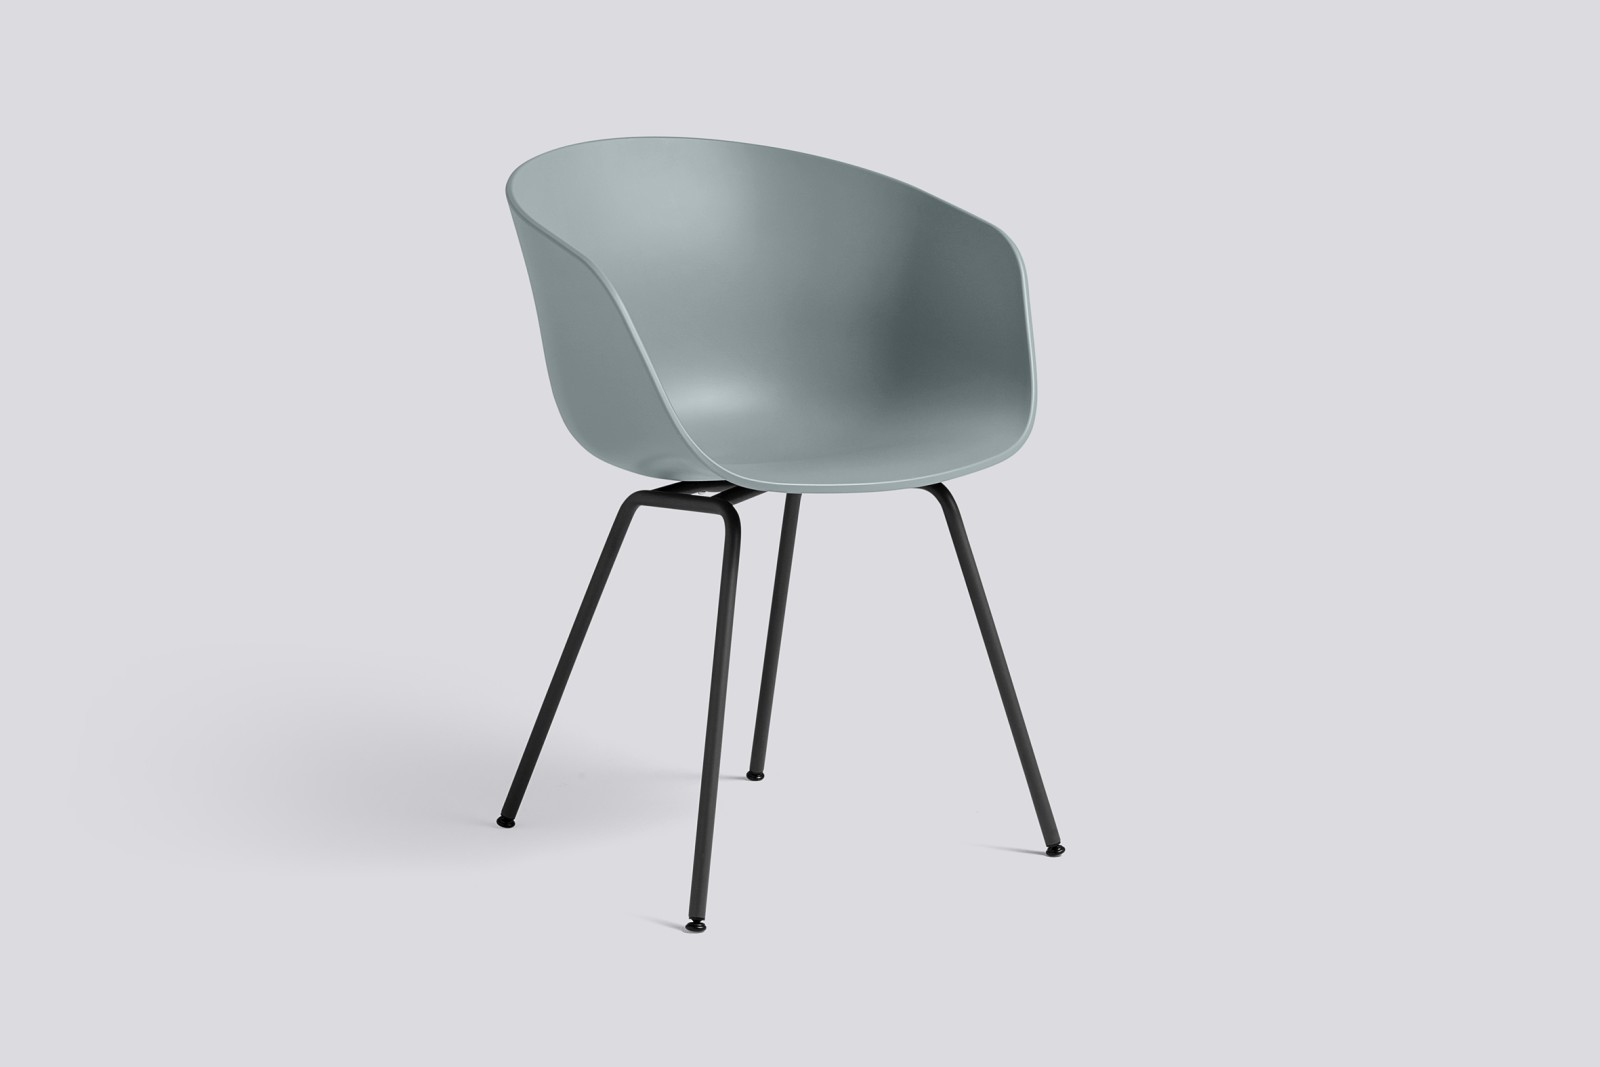 About A Chair AAC26 Dusty blue, Black Powder Coated Steel